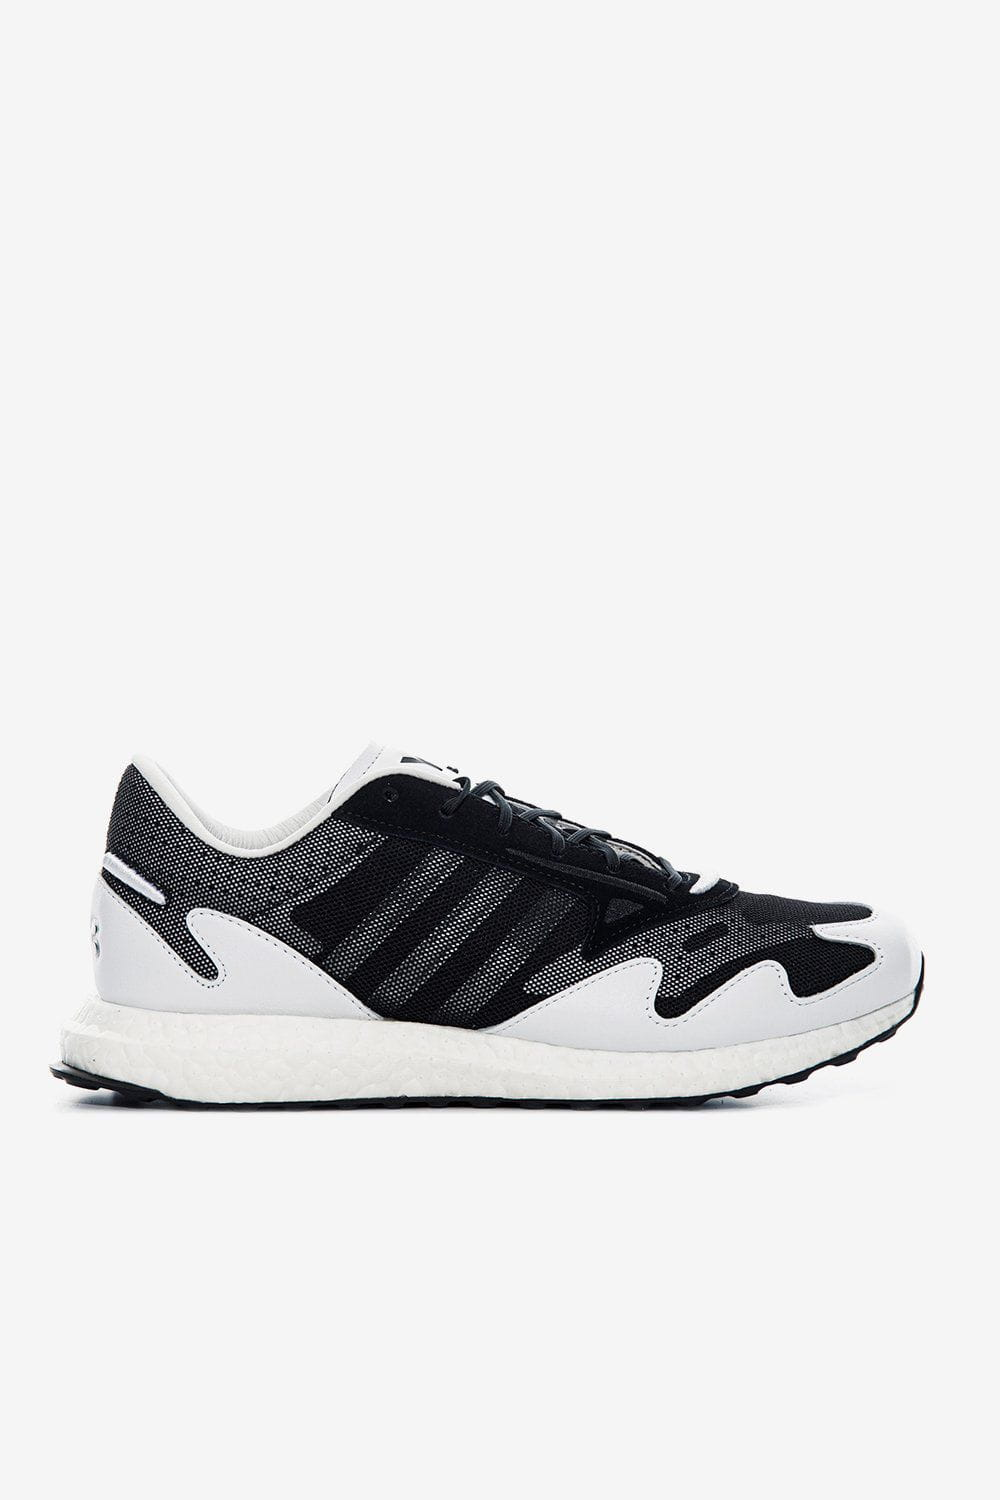 Y-3 Footwear Rhisu Run